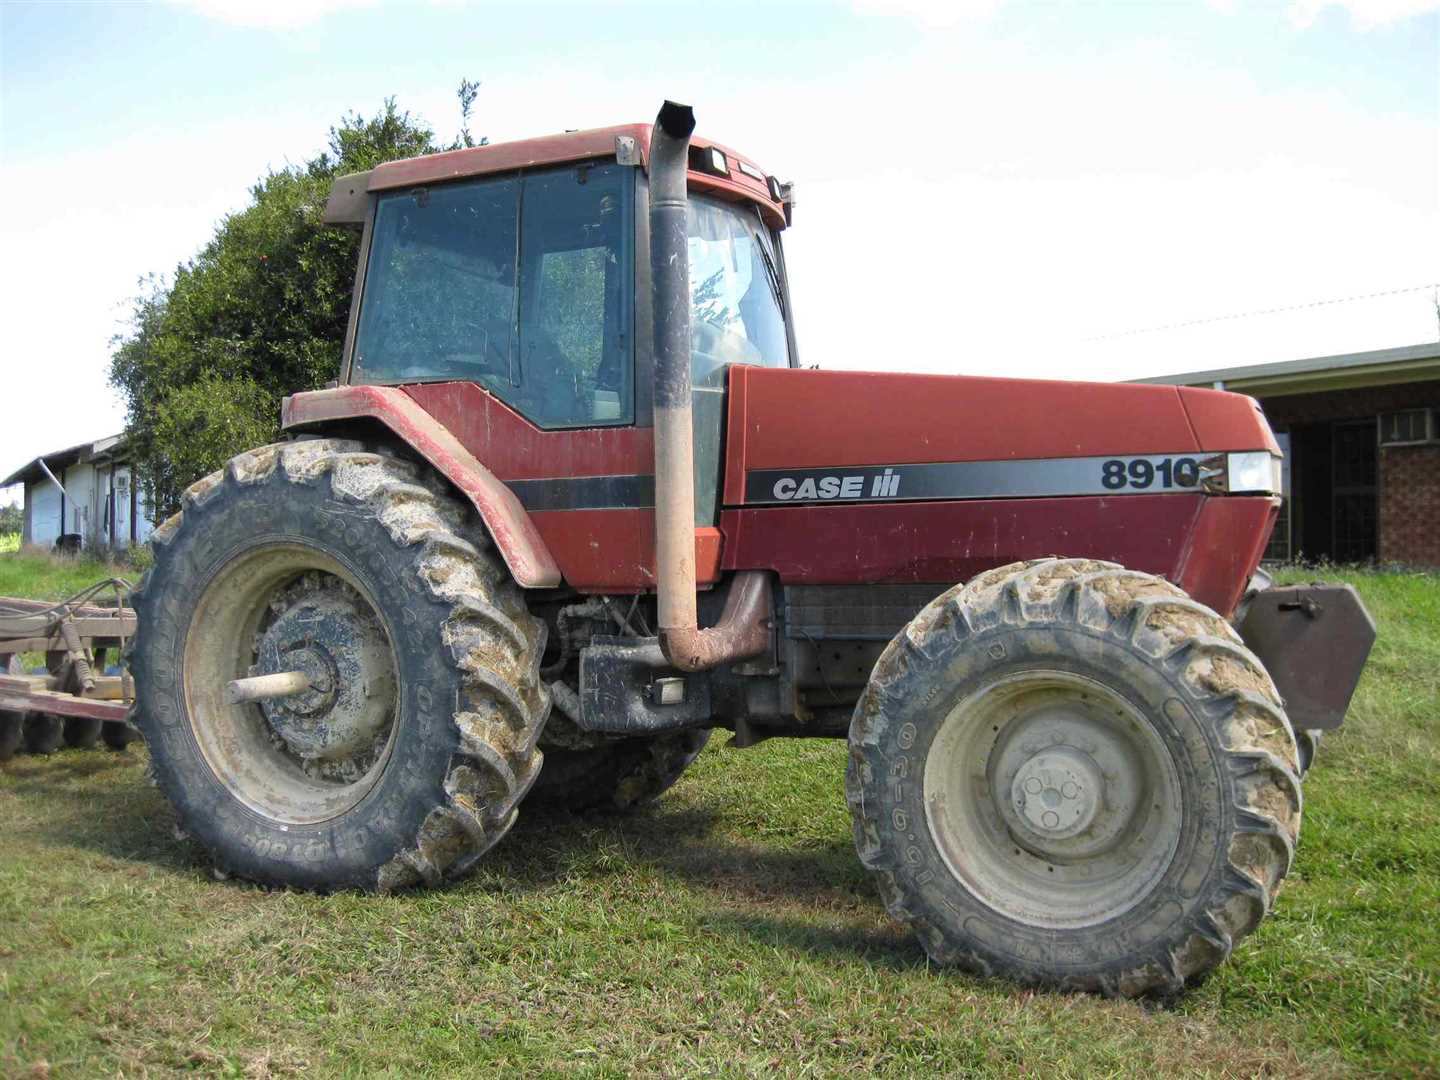 View of part of Tractor, Case Magnum 8910